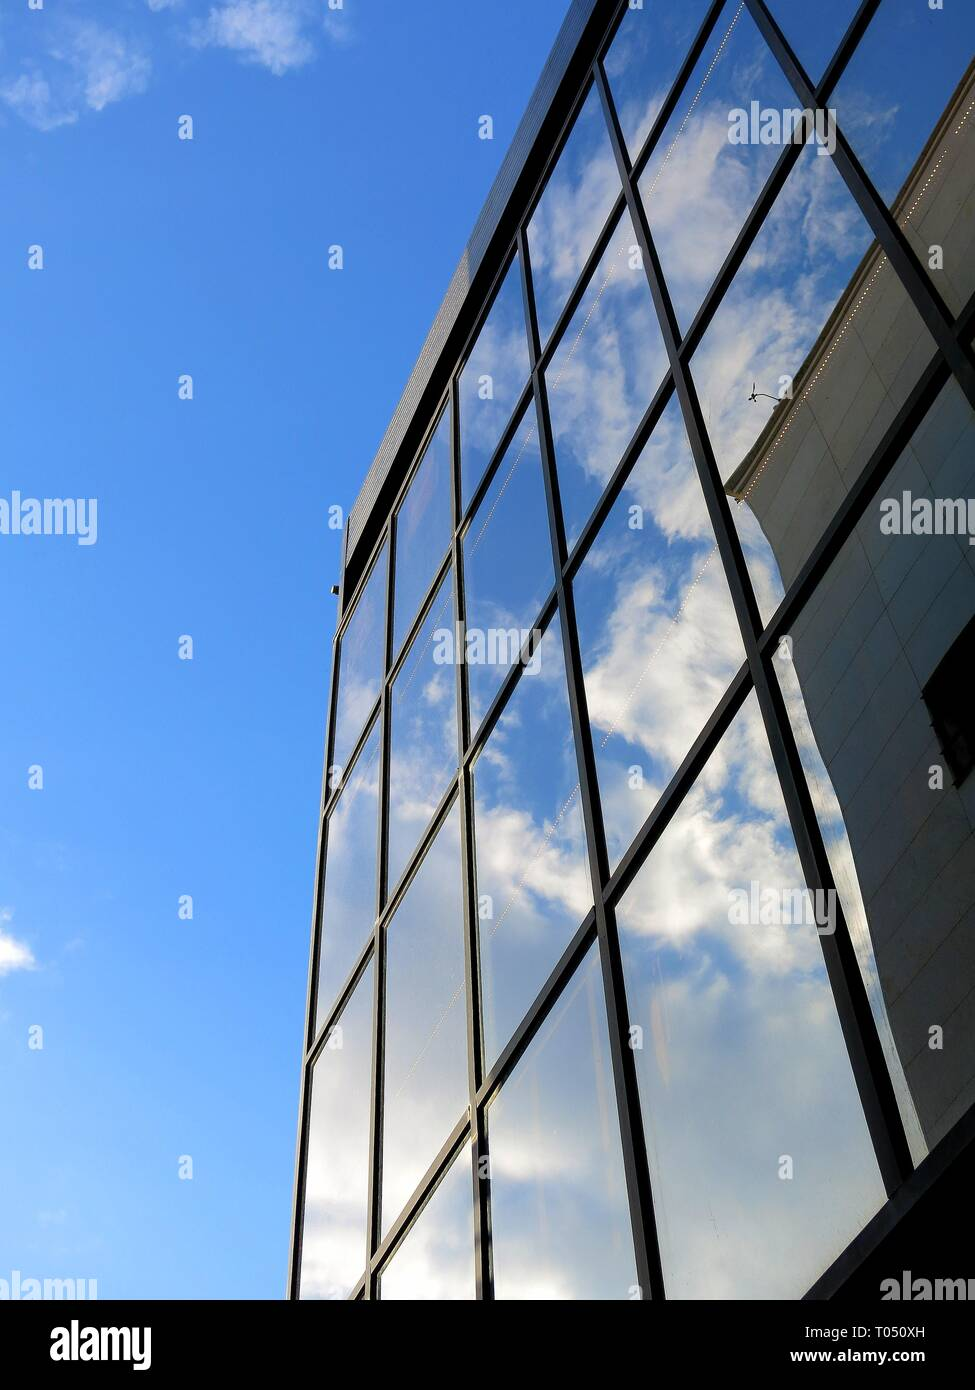 Reflection of clouds on window panes of a building. - Stock Image